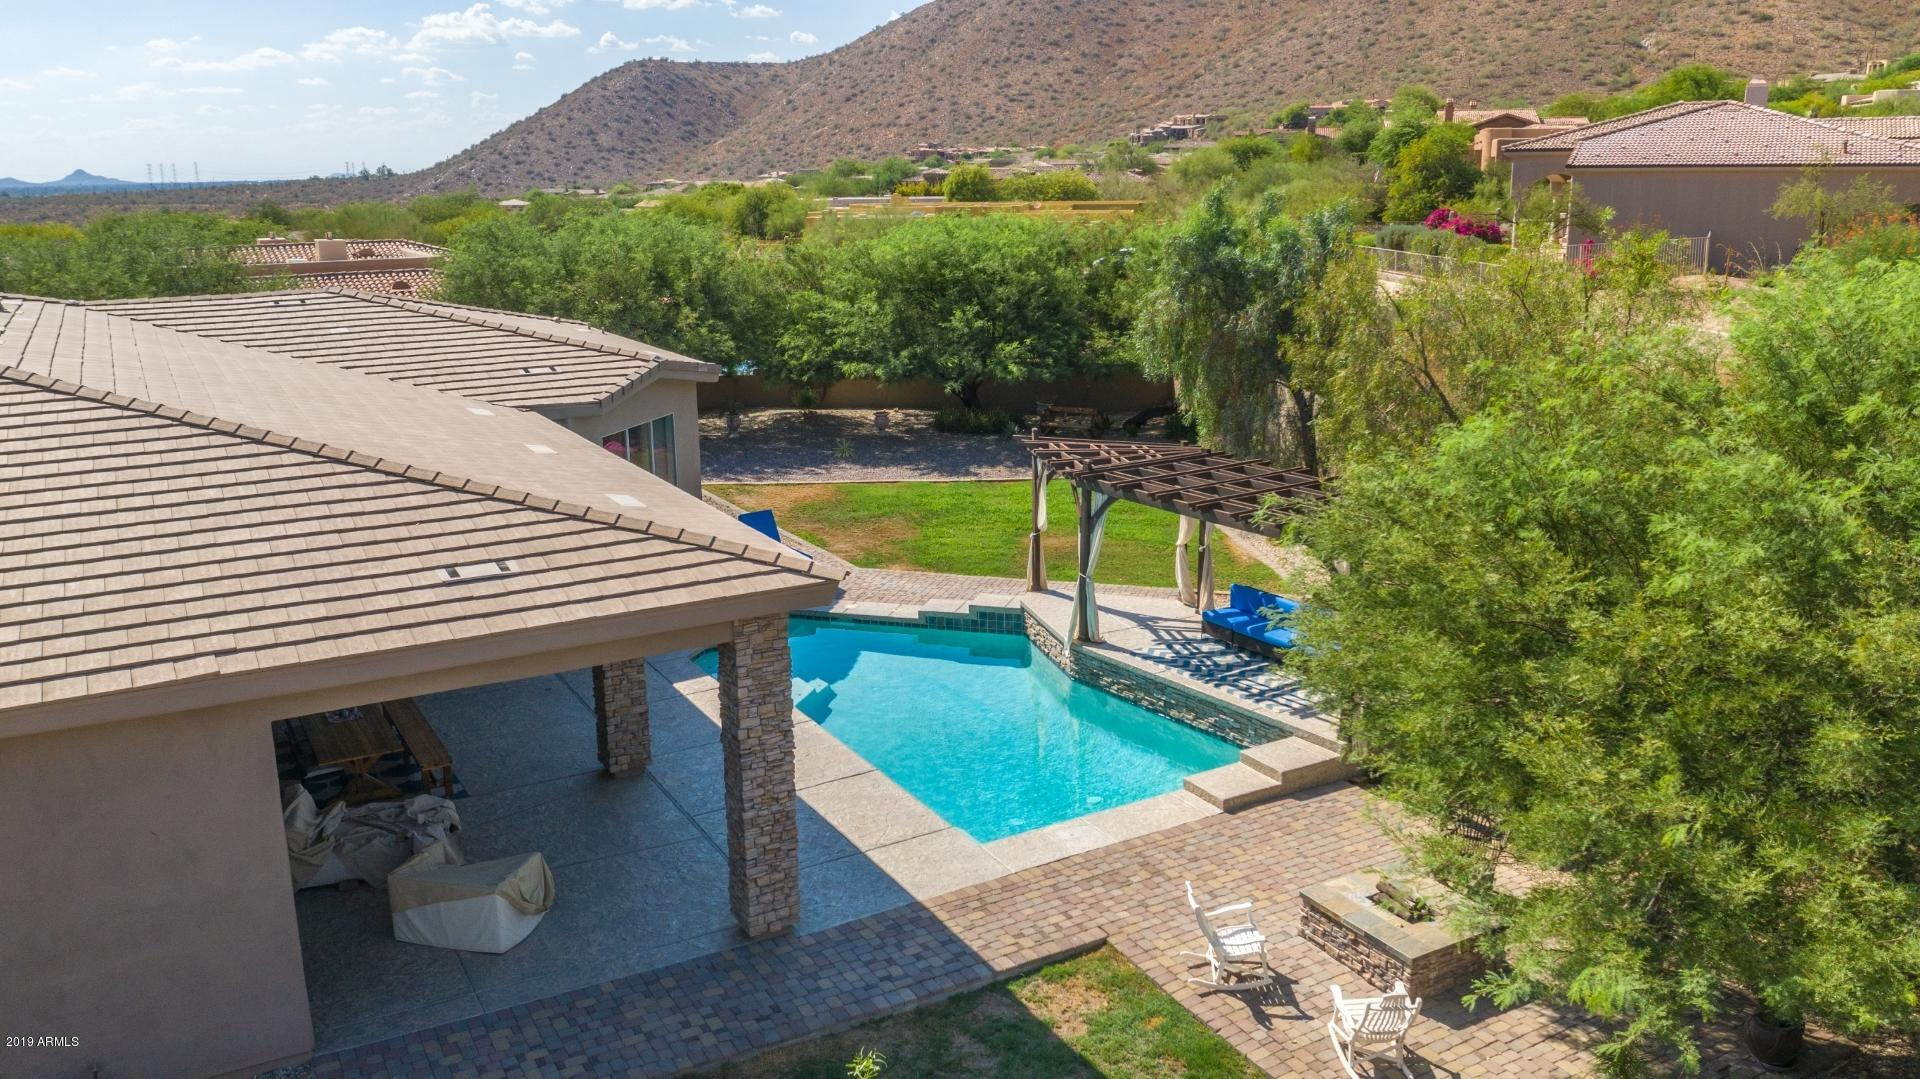 MLS 5961054 11808 E LARKSPUR Drive, Scottsdale, AZ 85259 Scottsdale AZ Private Pool